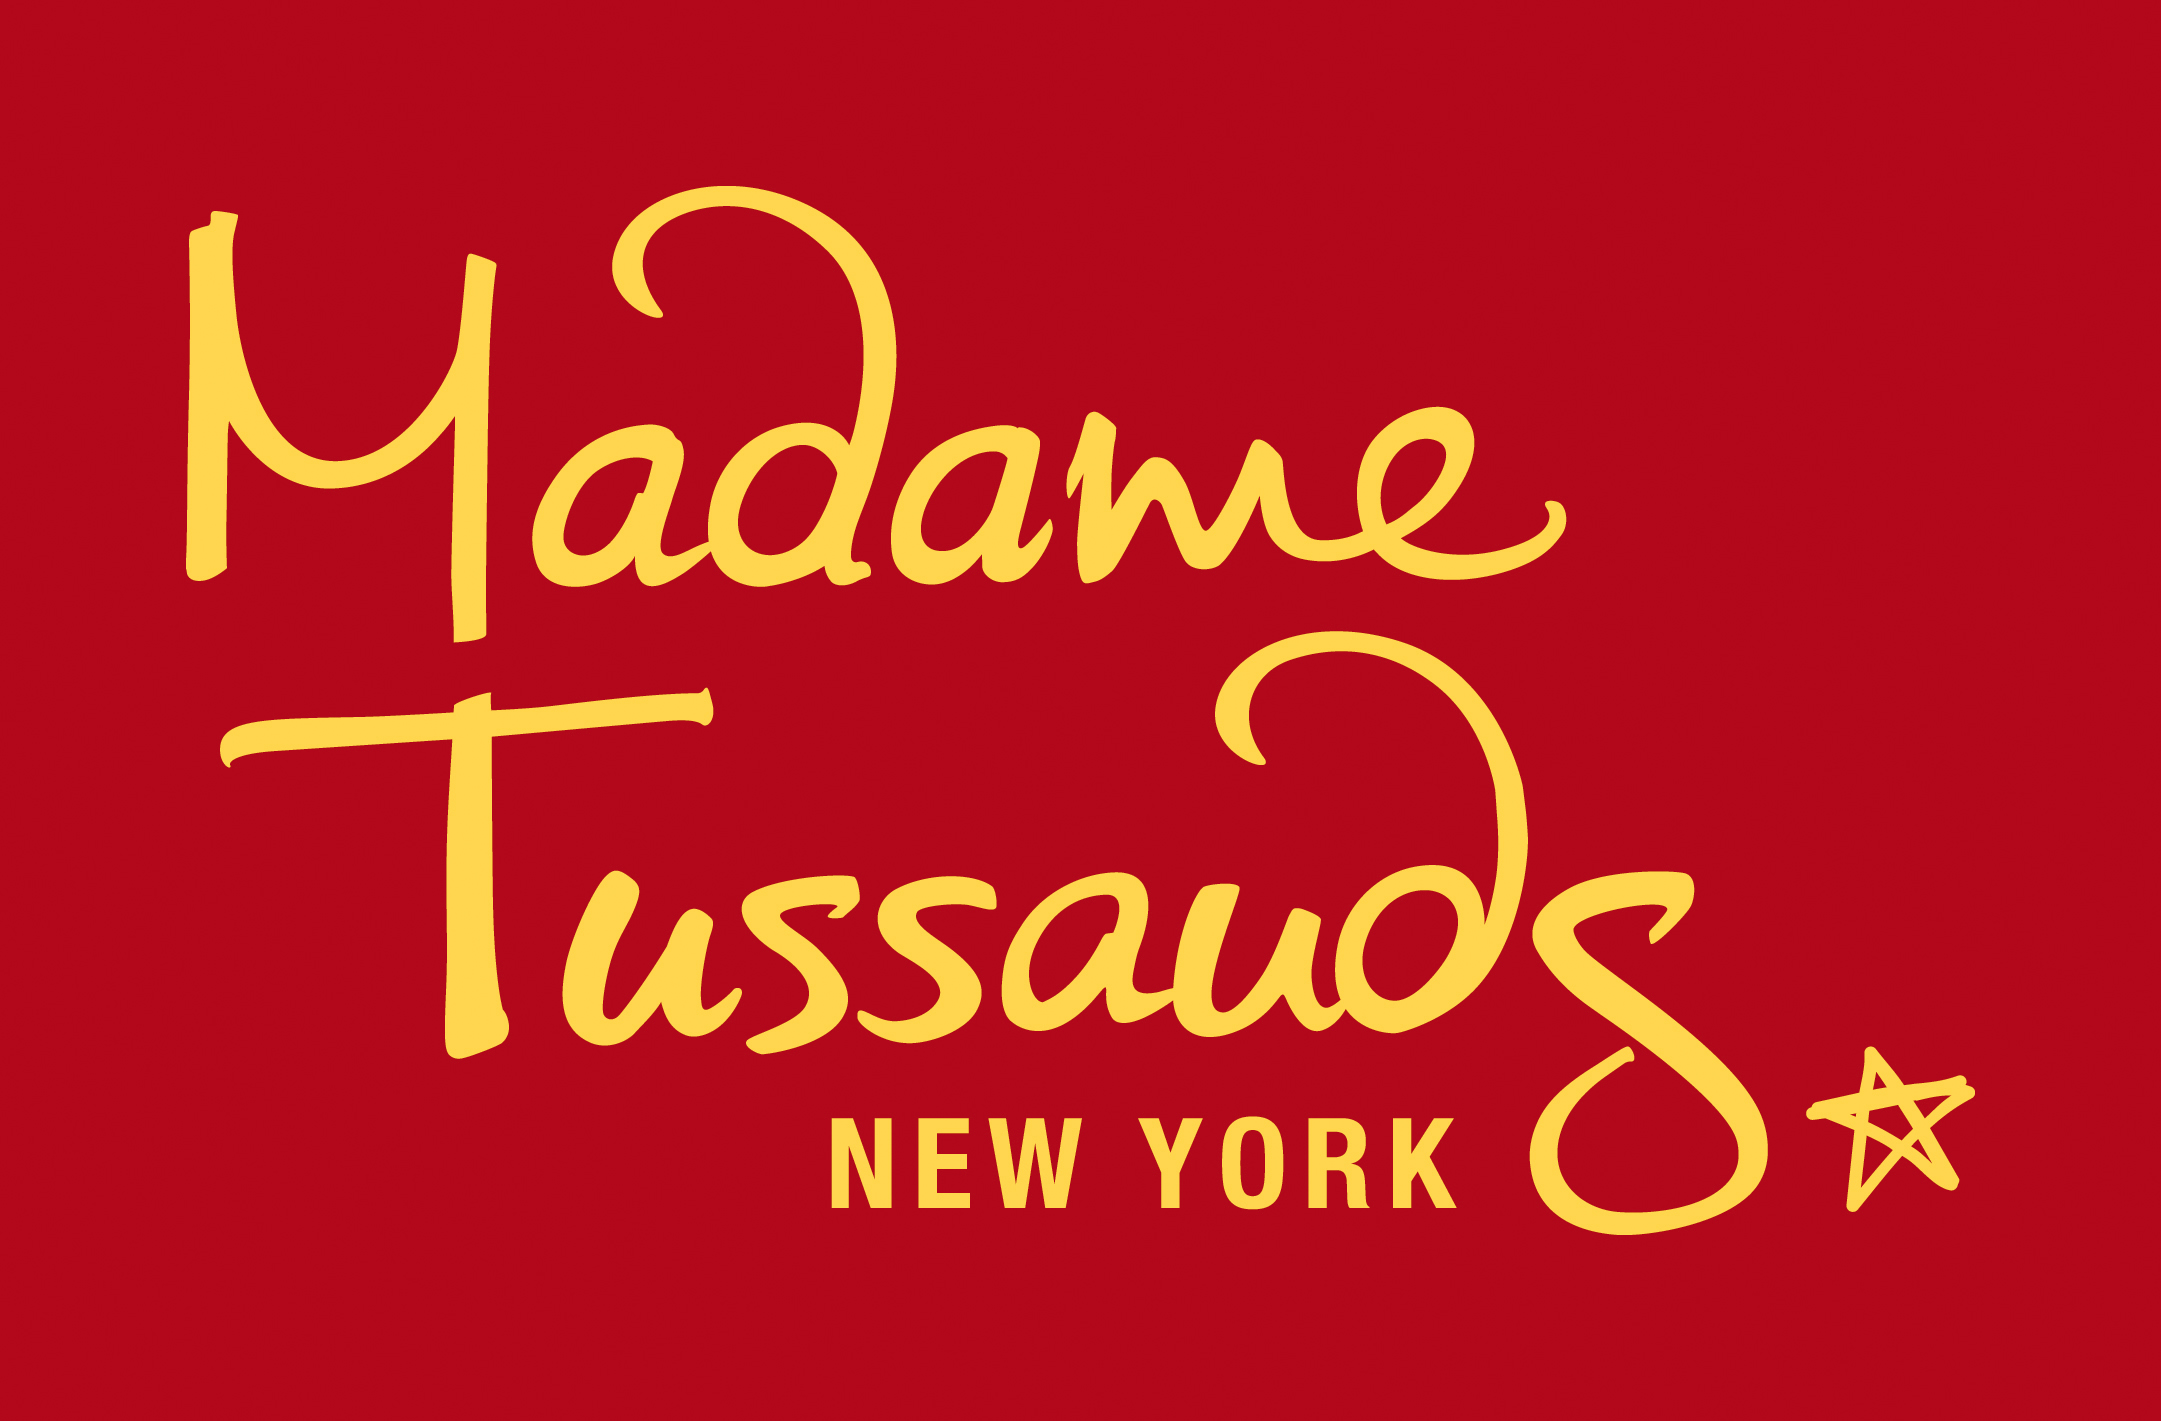 Madame Tussauds London Vouchers Deals and Discounts. Now in 19 different cities across the globe, Madame Tussauds in London is the original and first, having been founded by wax sculptor Marie Tussaud herself in the 19th century.